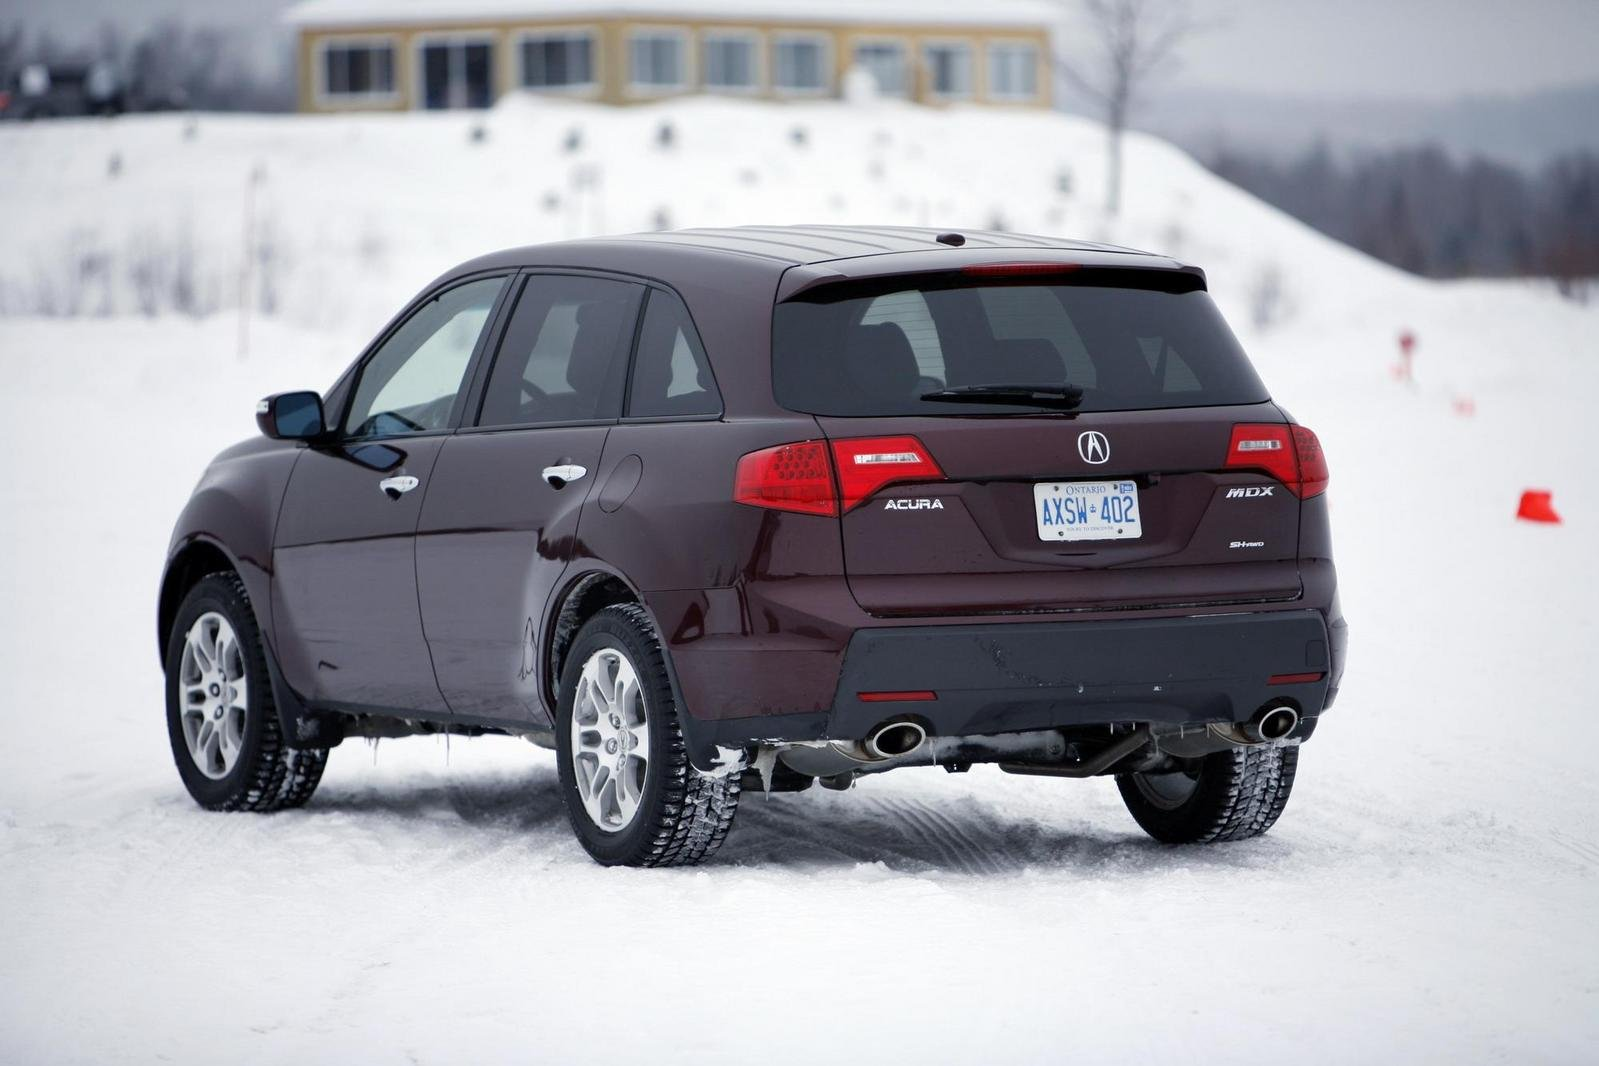 2009 acura mdx picture 299788 car review top speed. Black Bedroom Furniture Sets. Home Design Ideas